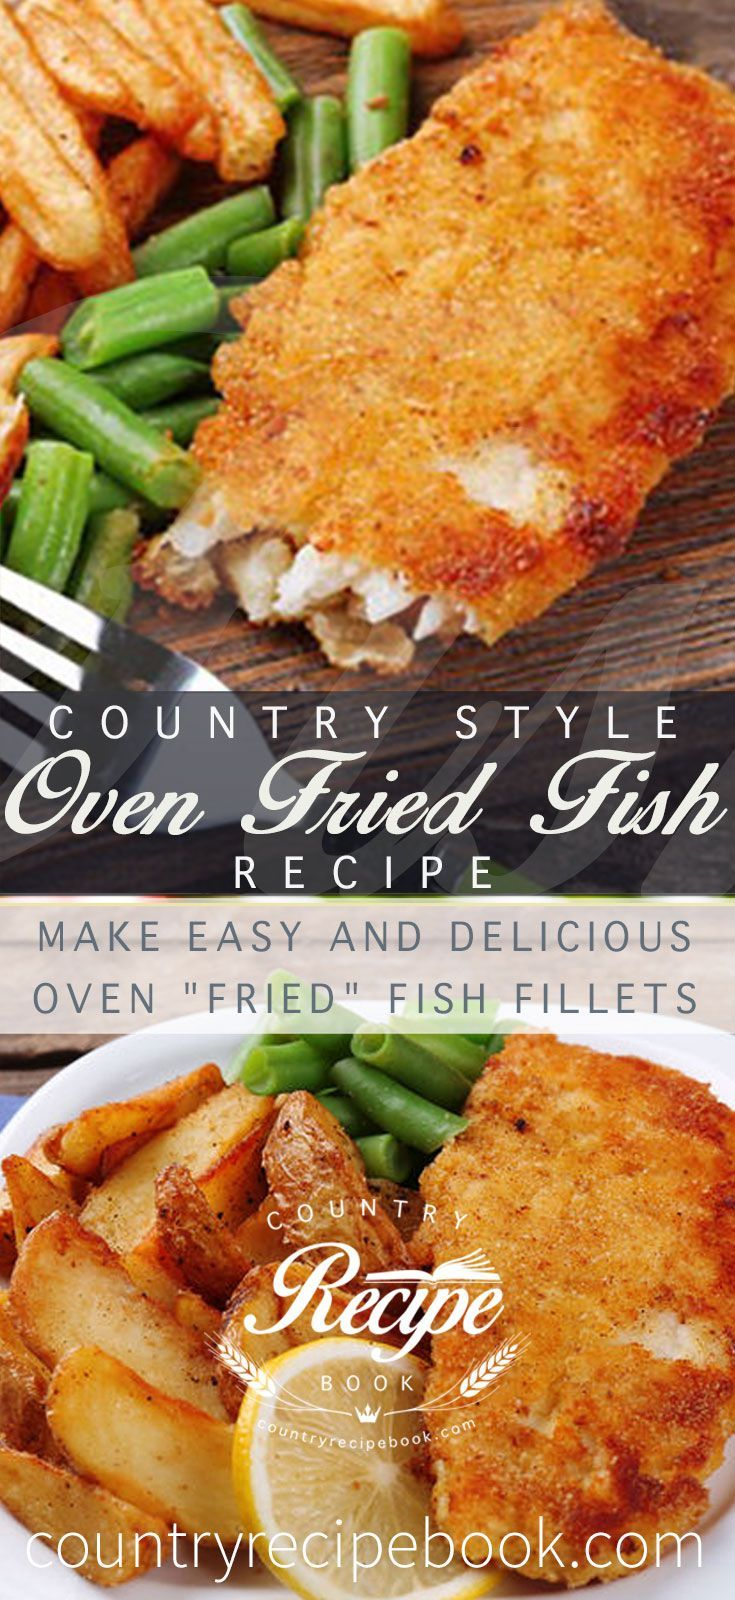 Recipe for fish cutlets from cod - tender taste, crispy crust